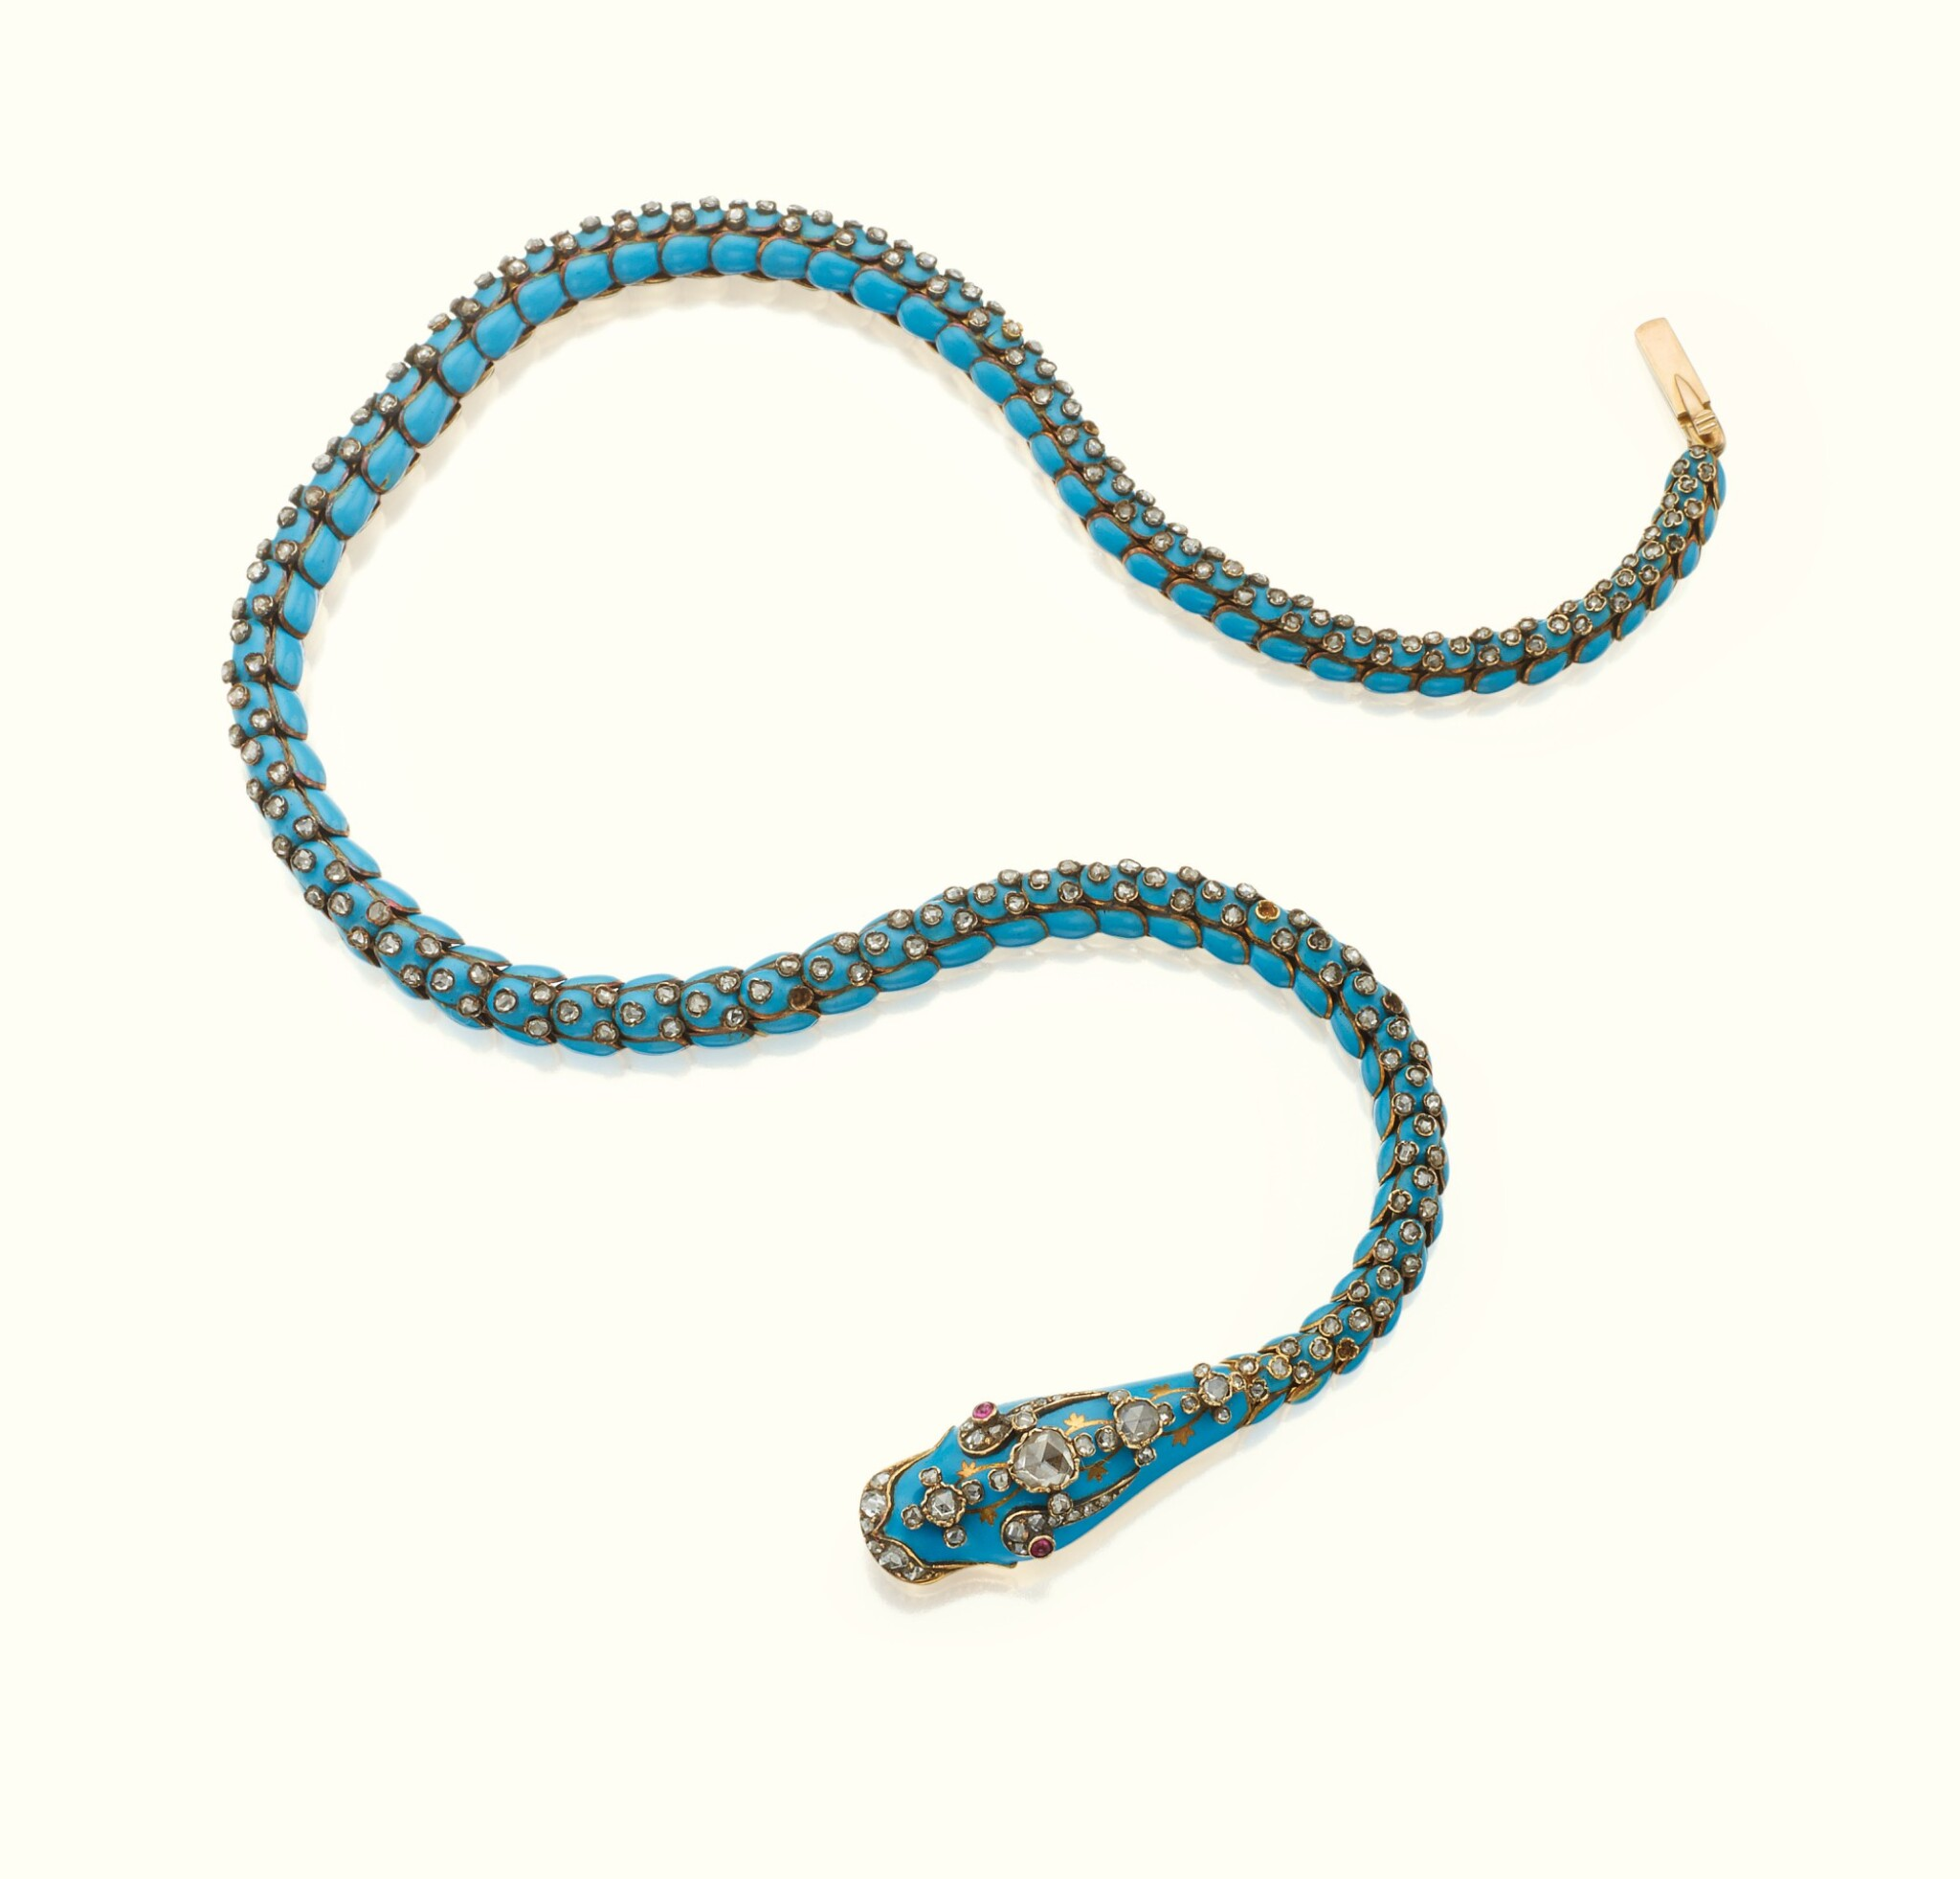 View full screen - View 1 of Lot 41. A GOLD, ENAMEL, AND JEWELED SERPENT NECKLACE, CIRCA 1875.